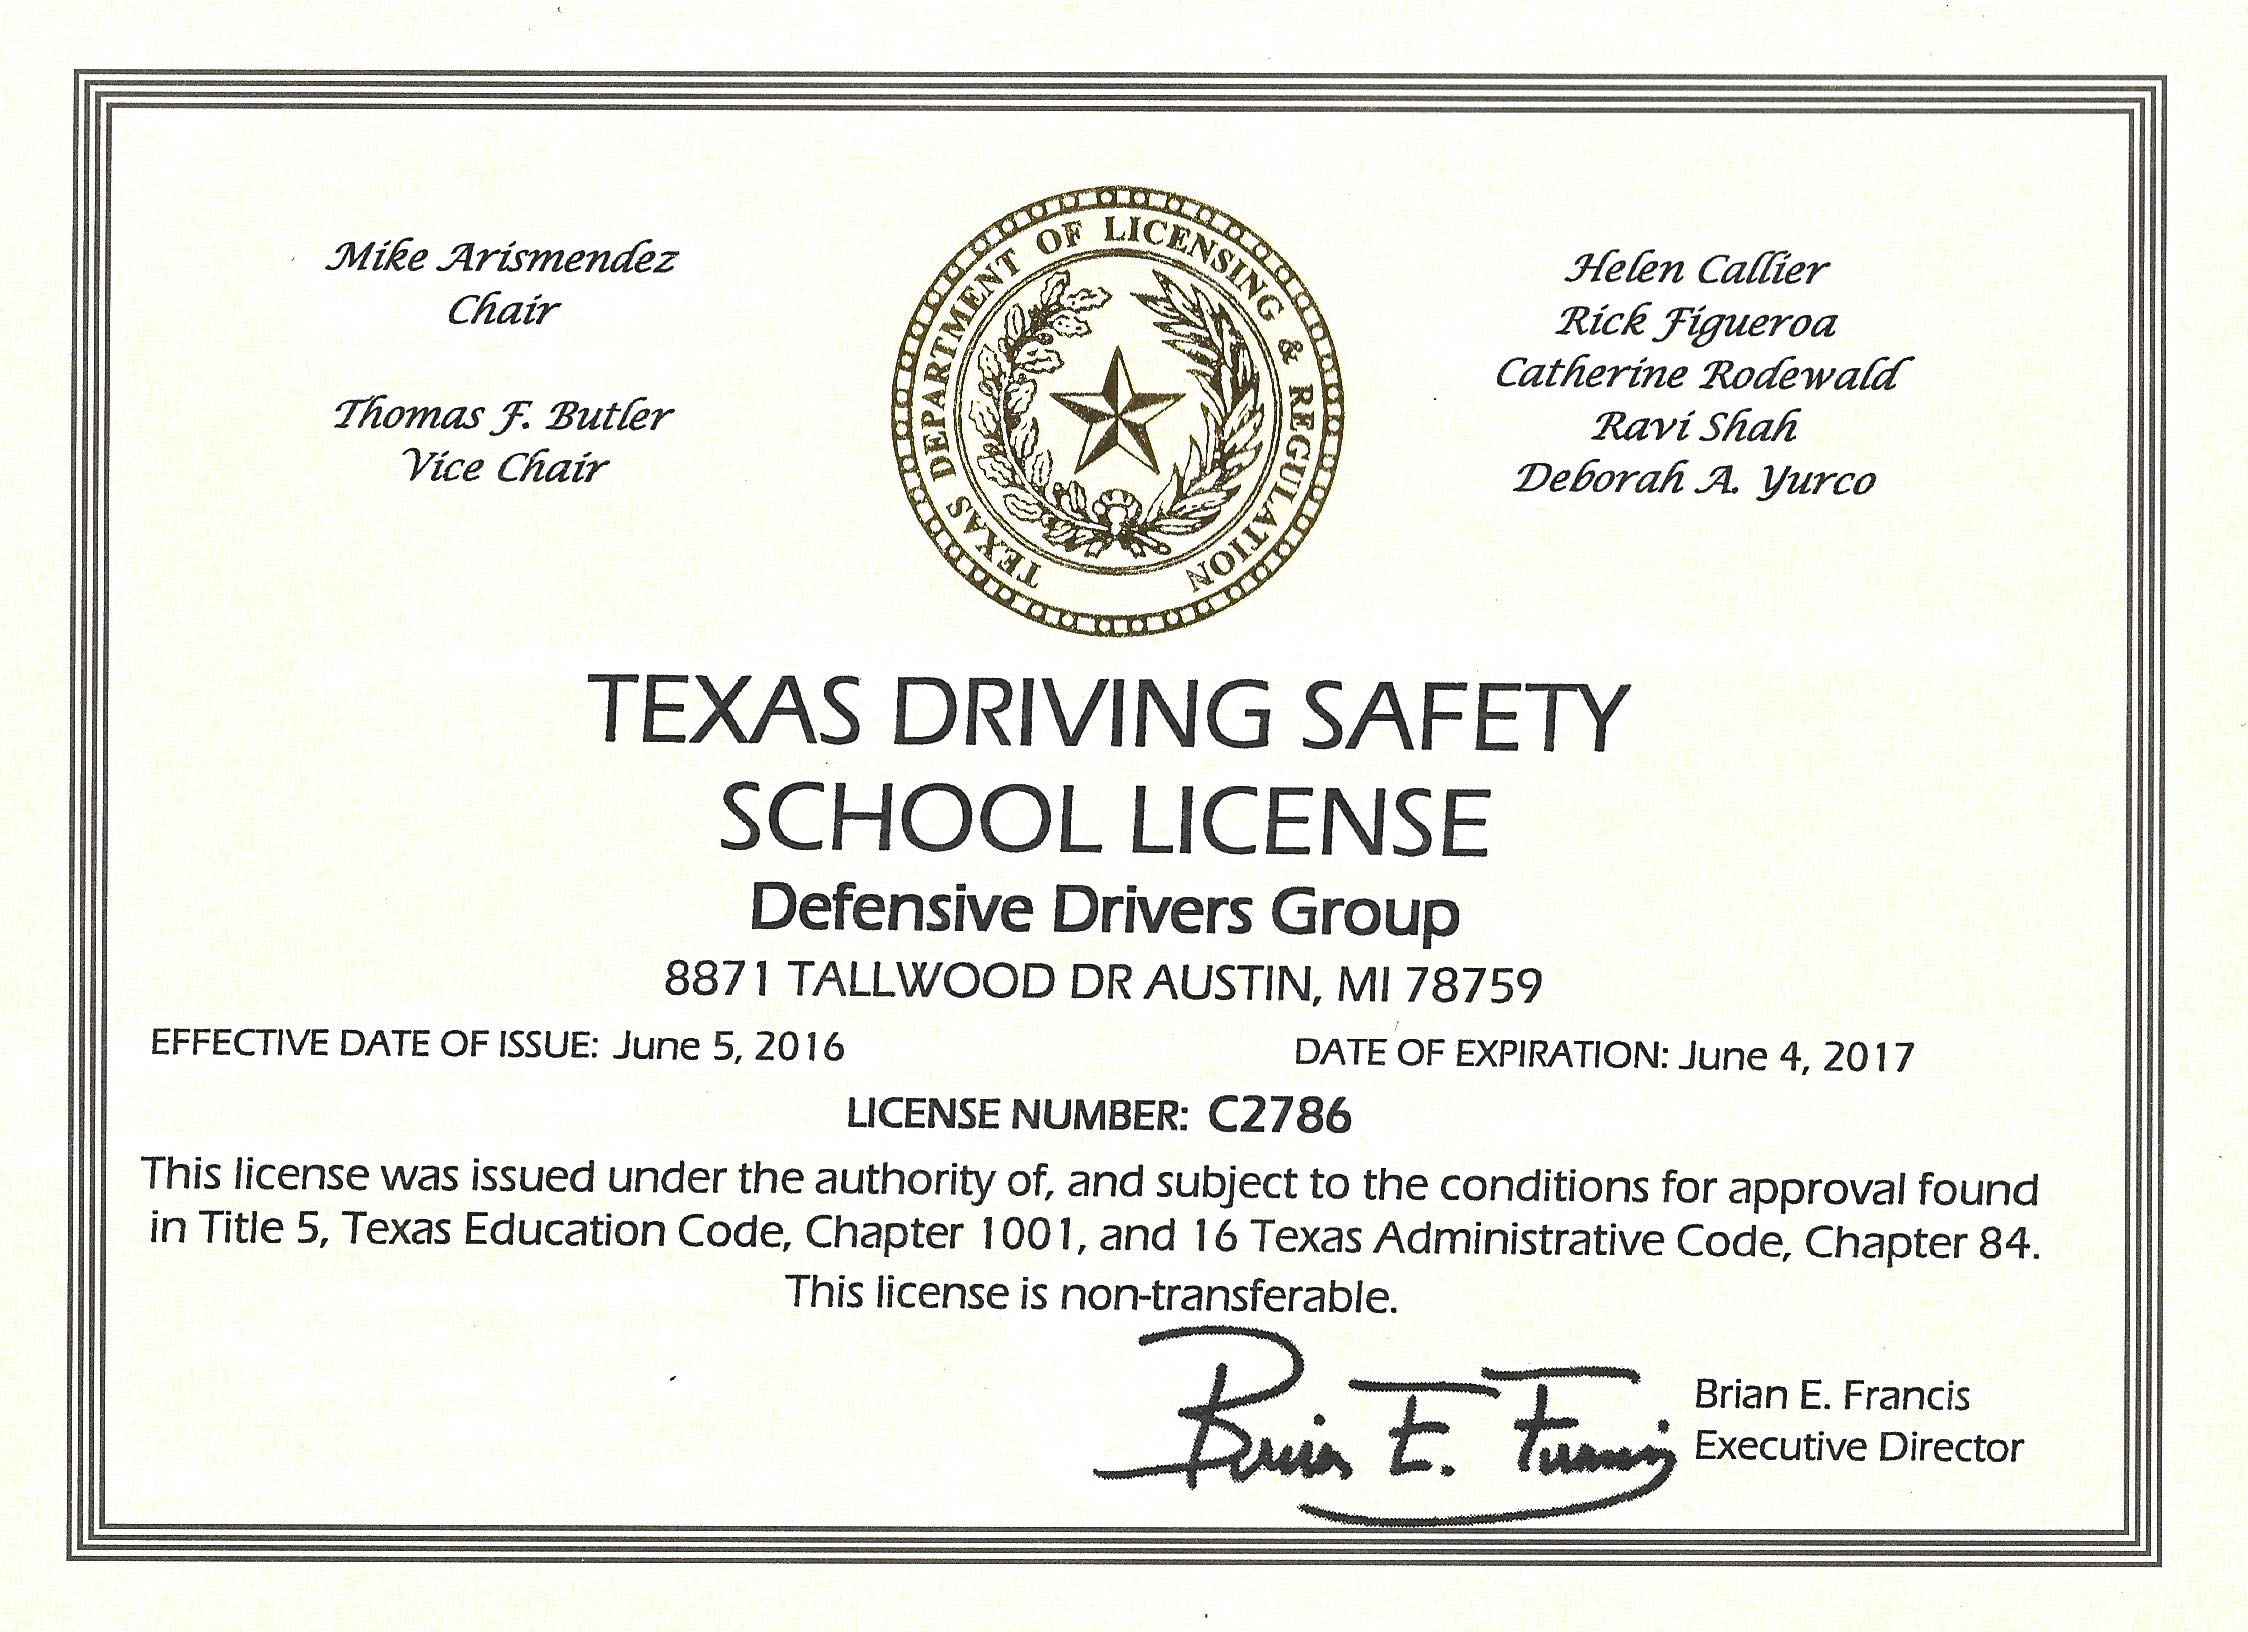 Texas Defensive Driving Online Courses TDLR - Home